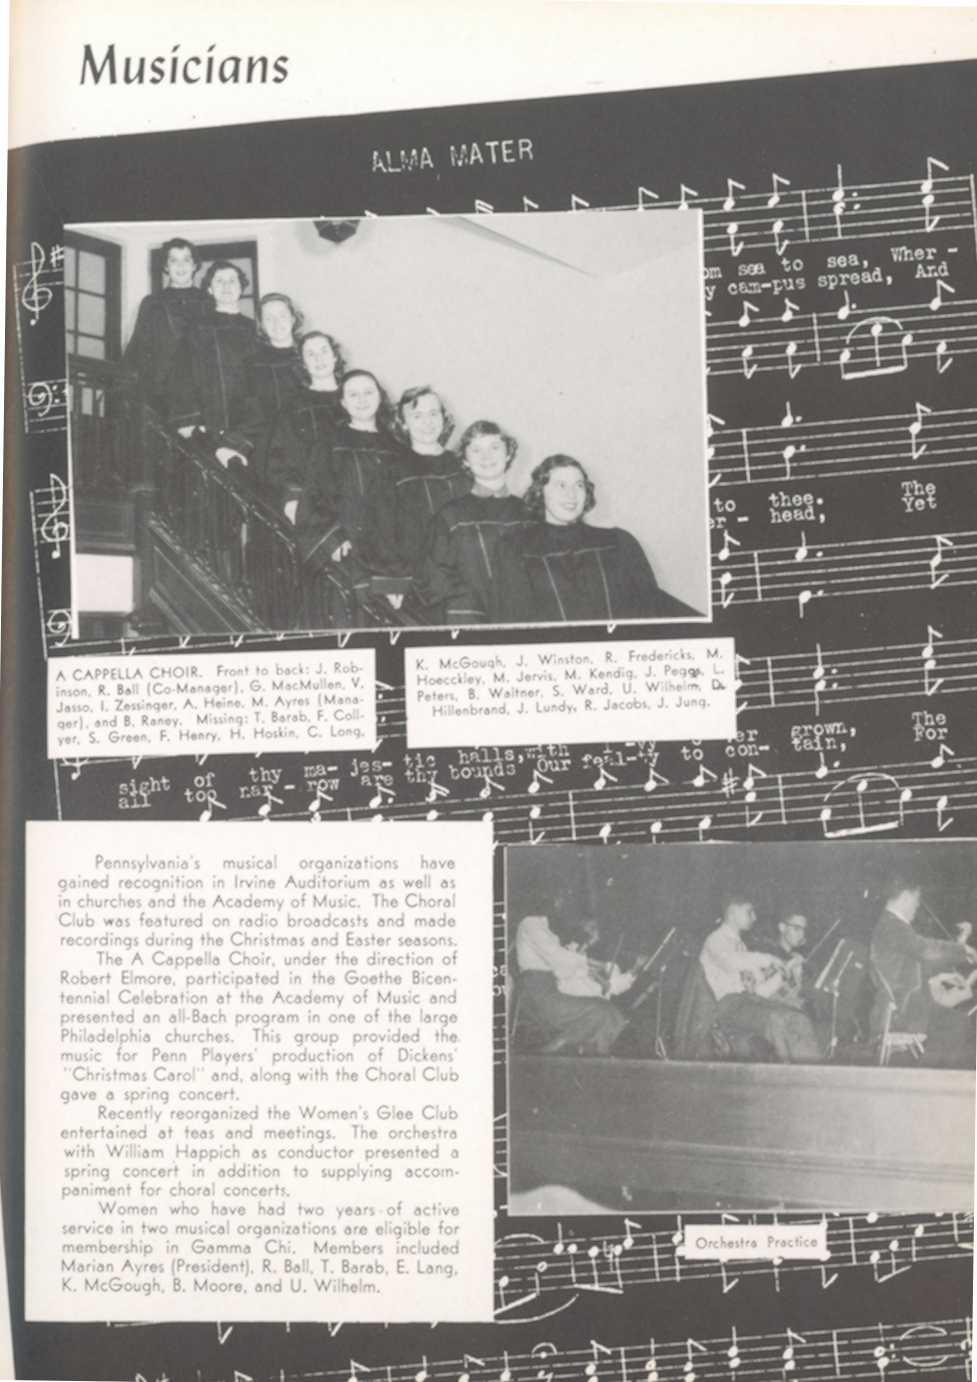 oll ntennial Musician s A CAPPELLA CHOIR Front to back : J R R Ball (Co-Man age r ), G MacMullen, obinson, V Jasso, I Zessinger, A Heine, M Ayres (Man and B Raney Missing: T Barab, F C ager), ye r, S